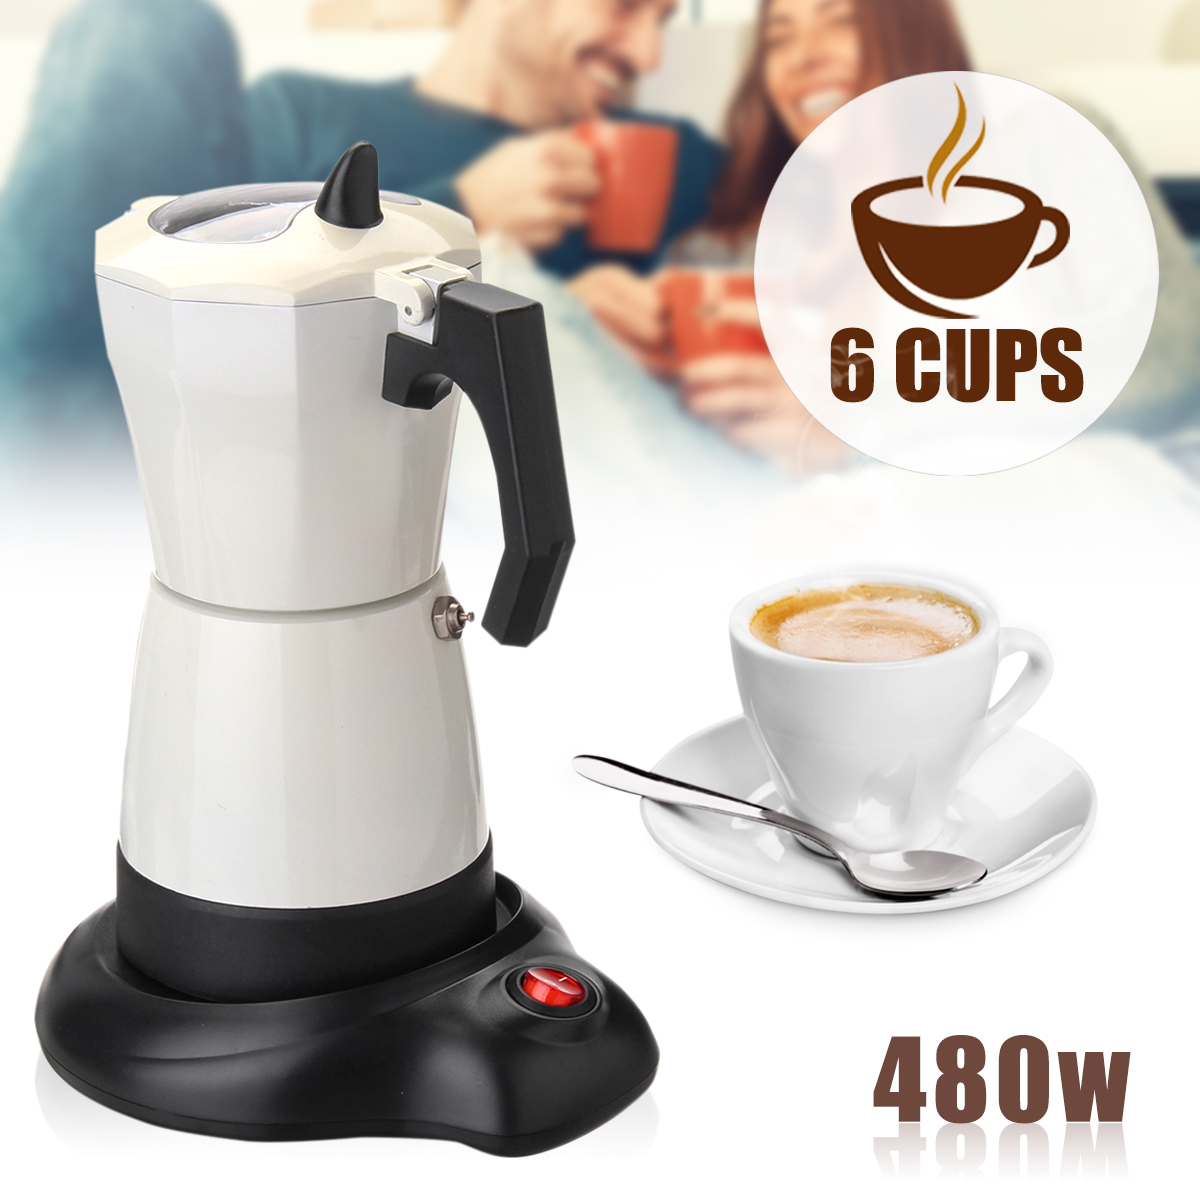 5 Minutes Coffee Maker 480W 6 Cups Electric Coffee Machine Tea Coffee Pot Mocha Kettle Removable Kitchen Tool Home Office 220 240v 480w electric mocha potty italian coffee pot home office electric heating coffee coffee mocha coffee equipment 6 cups